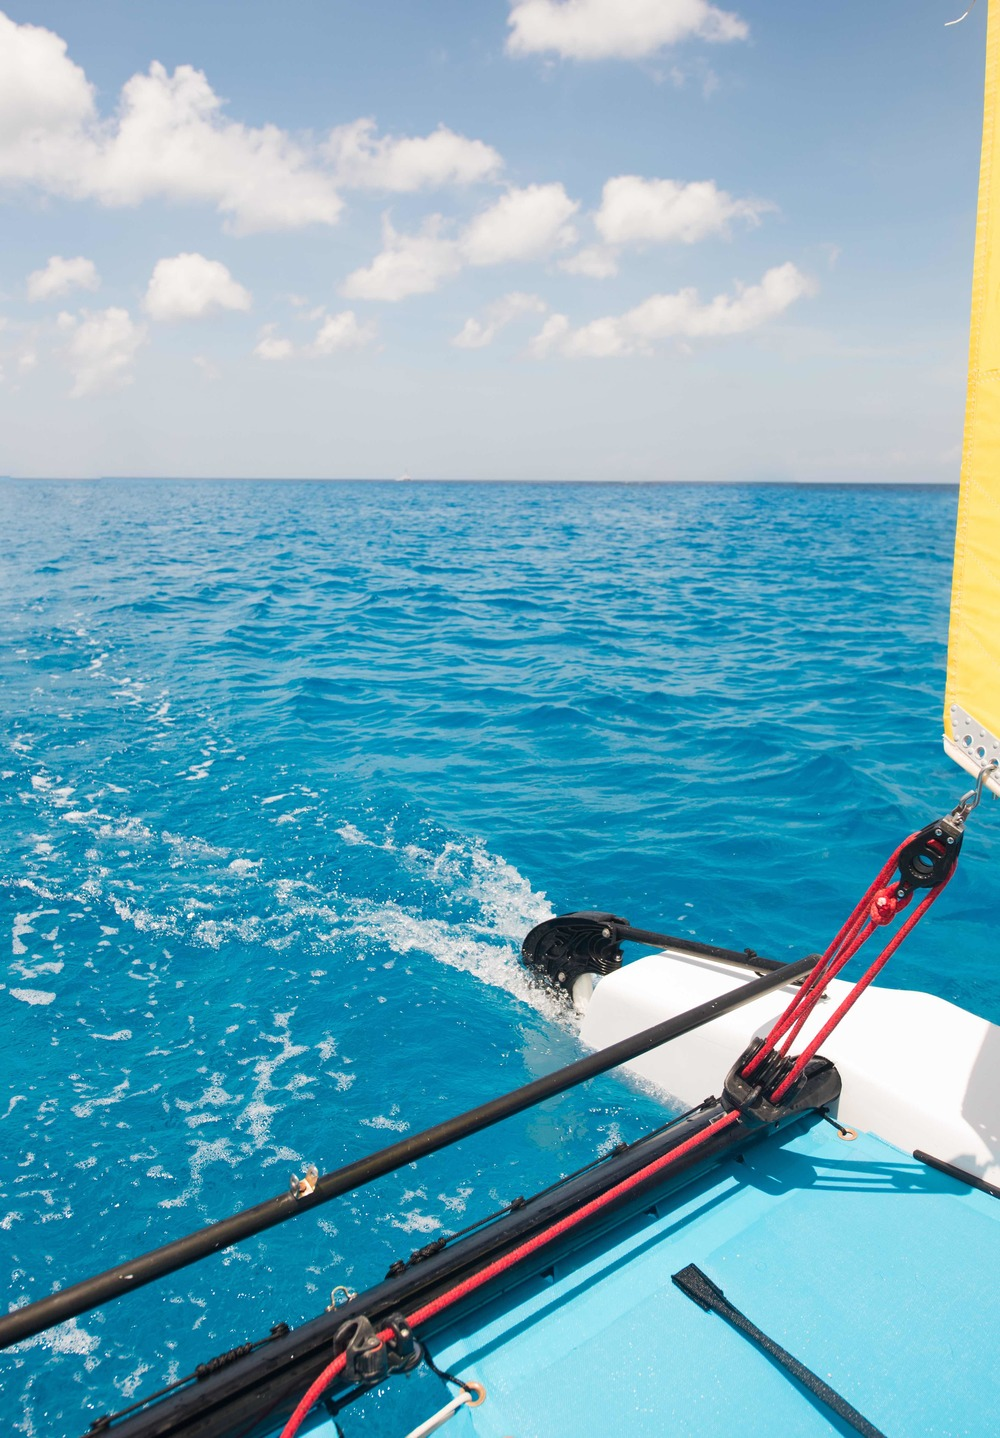 sailing Kayaking Cozumel Mexico THISWORLDEXISTS this world exists ryan gray media somos fotocreativos the explorean all inclusive fiesta americana beach holiday caribbean